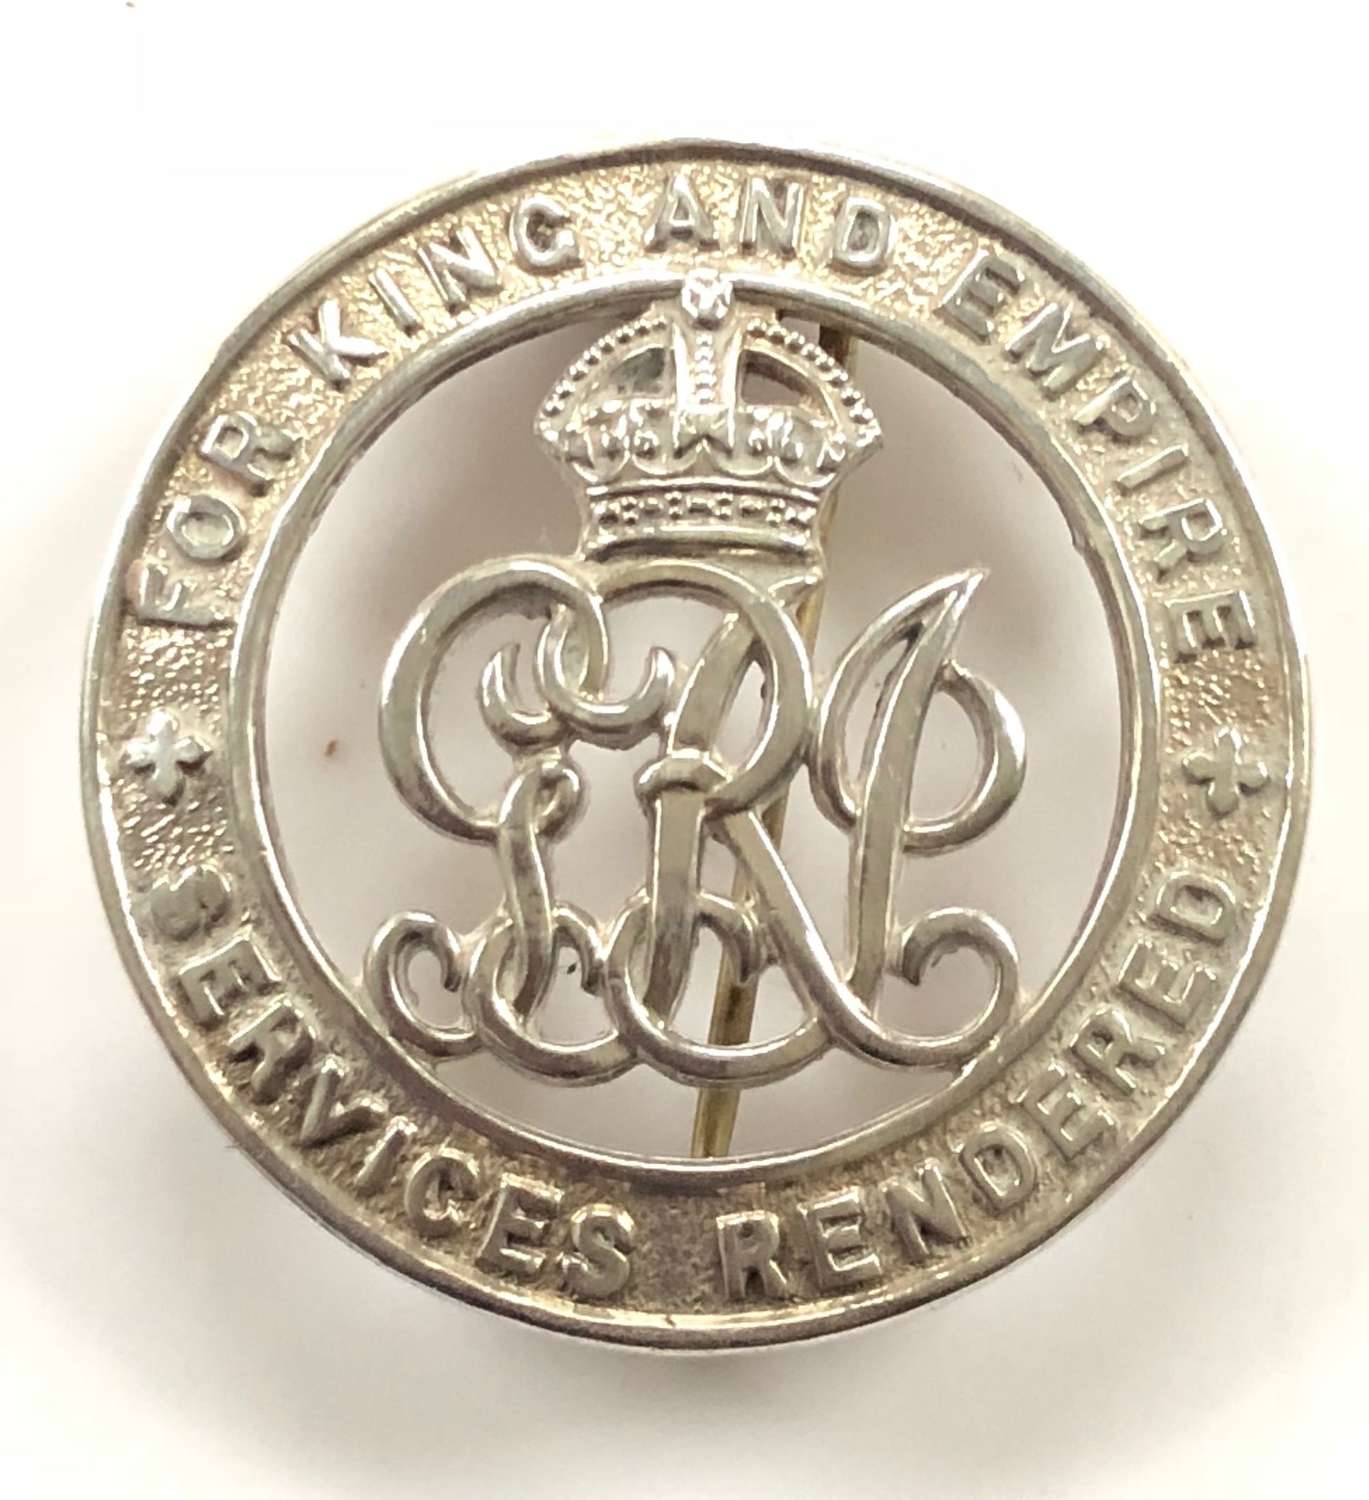 WW1 Ox & Bucks Light Infantry Silver War Badge.